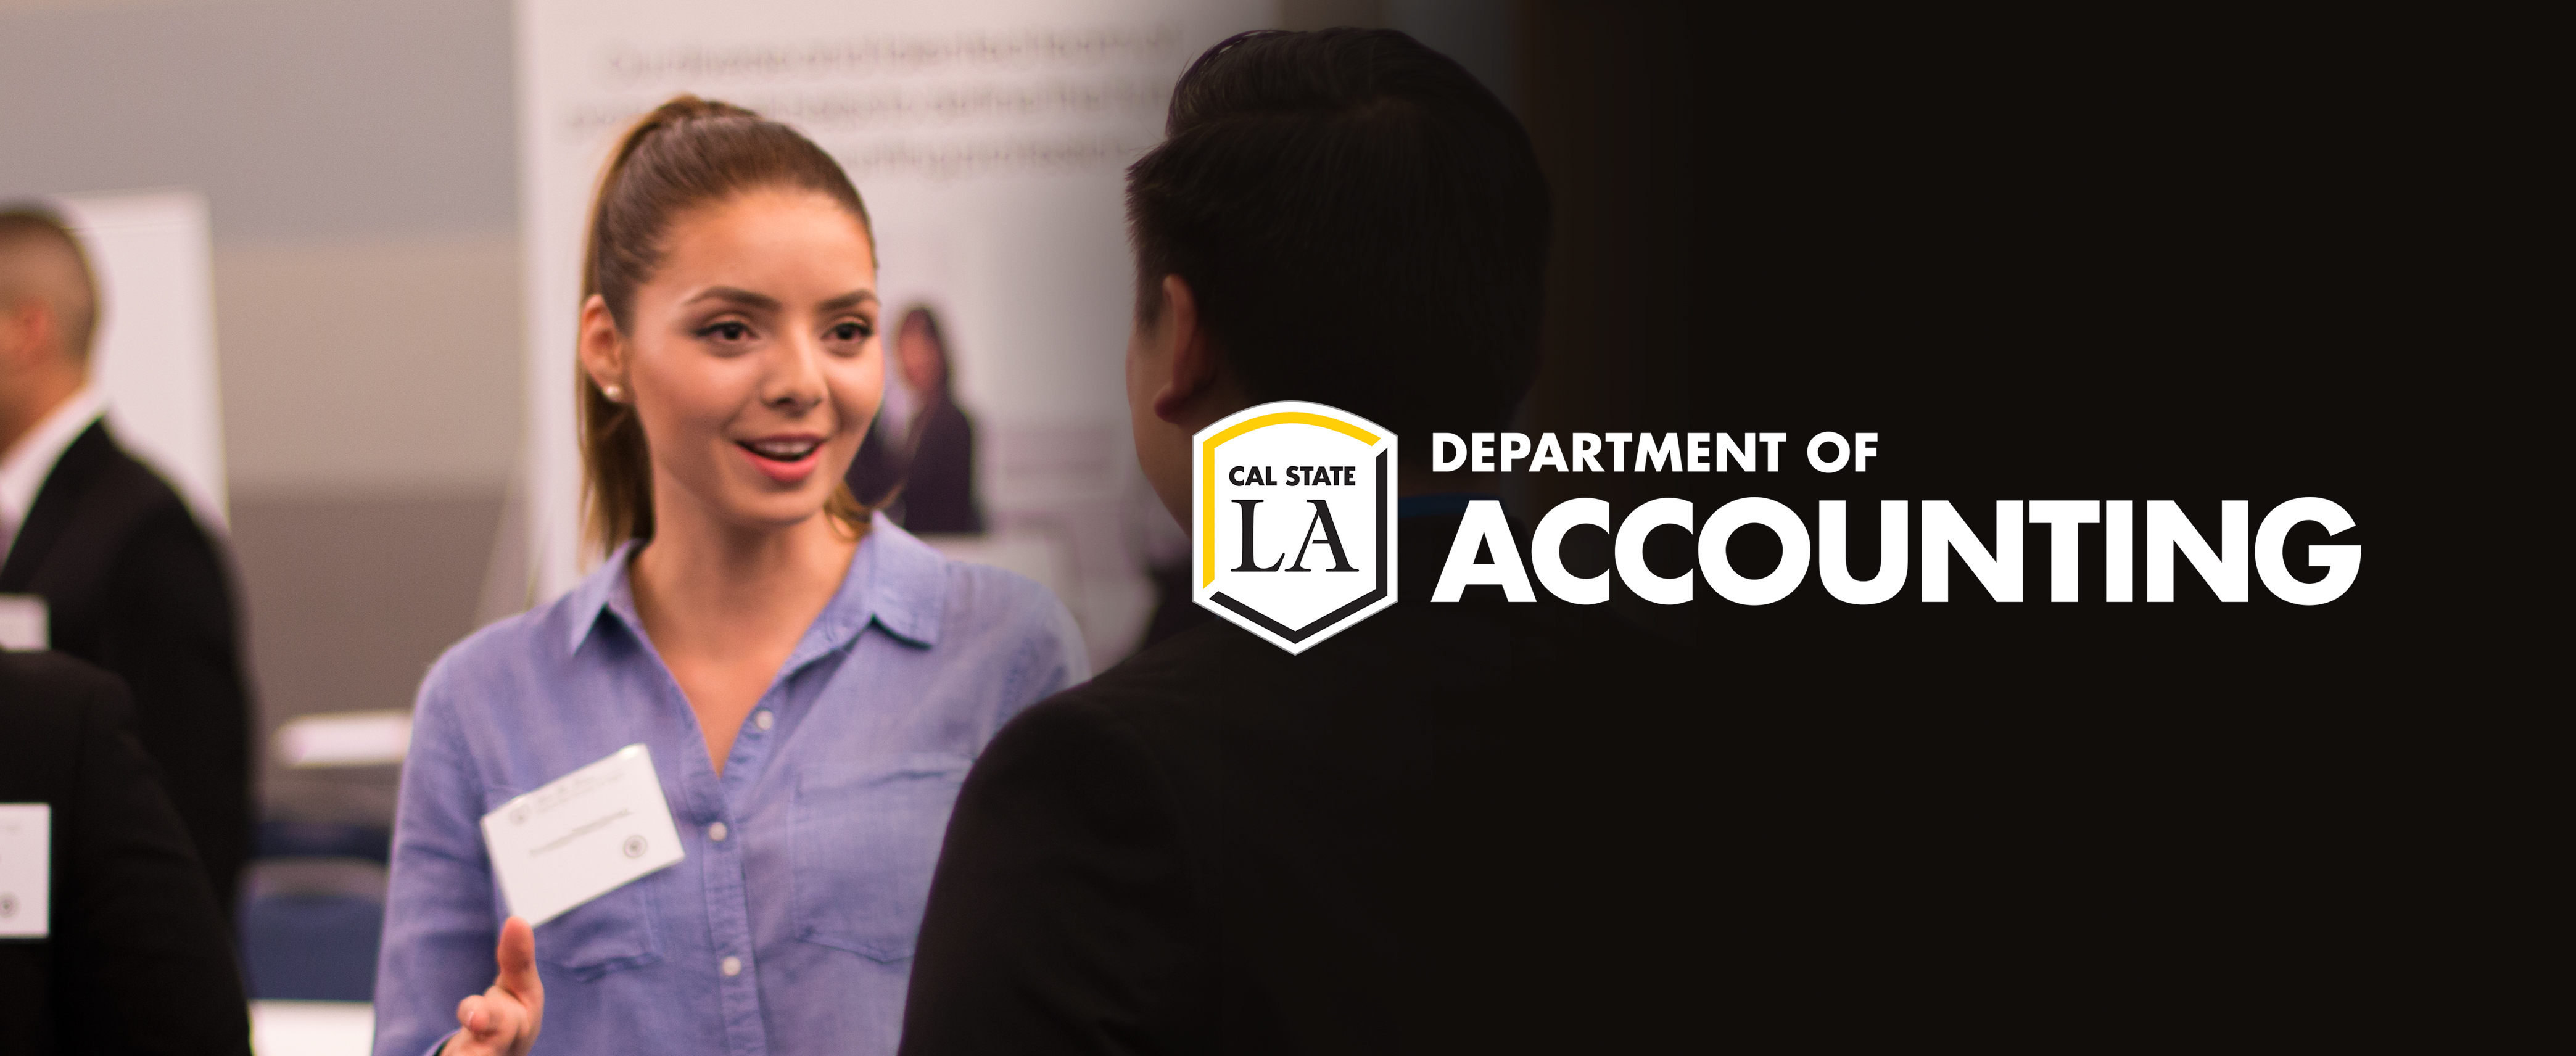 Cal State LA College of Business & Economics | Department of Accounting